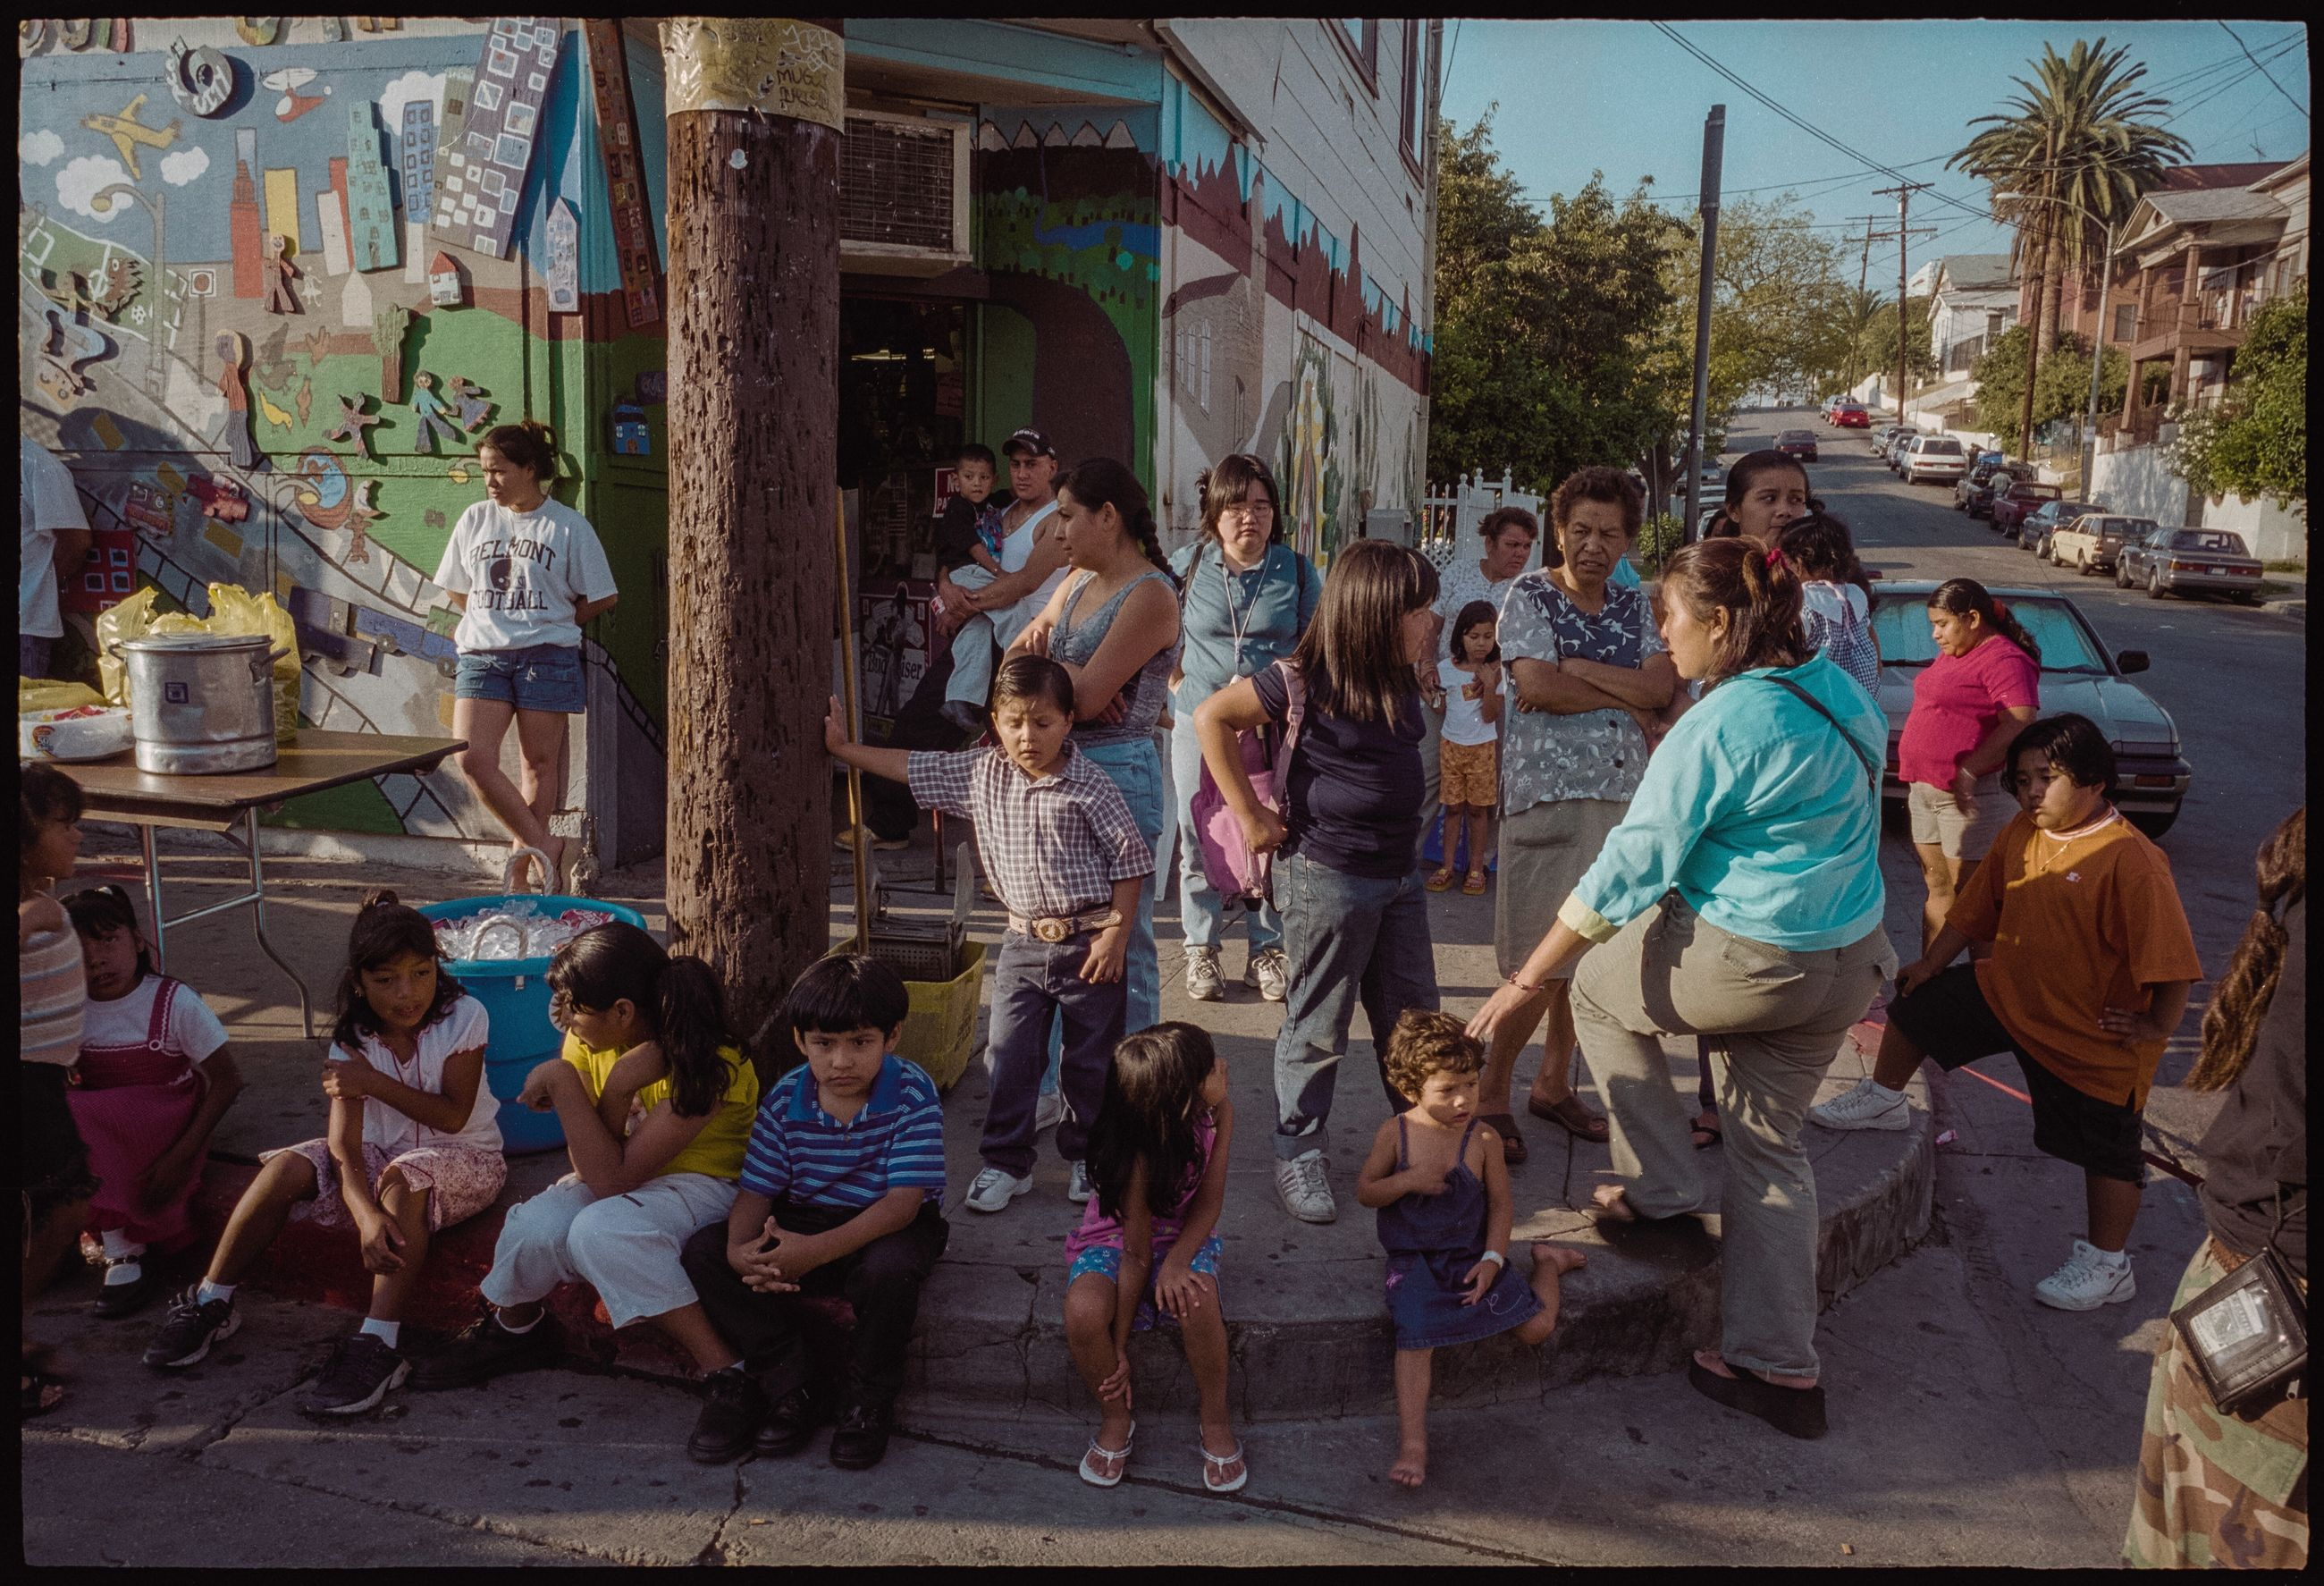 group of people, crowd, large group of people, real people, women, men, architecture, city, day, lifestyles, sitting, adult, casual clothing, built structure, building exterior, street, leisure activity, seat, outdoors